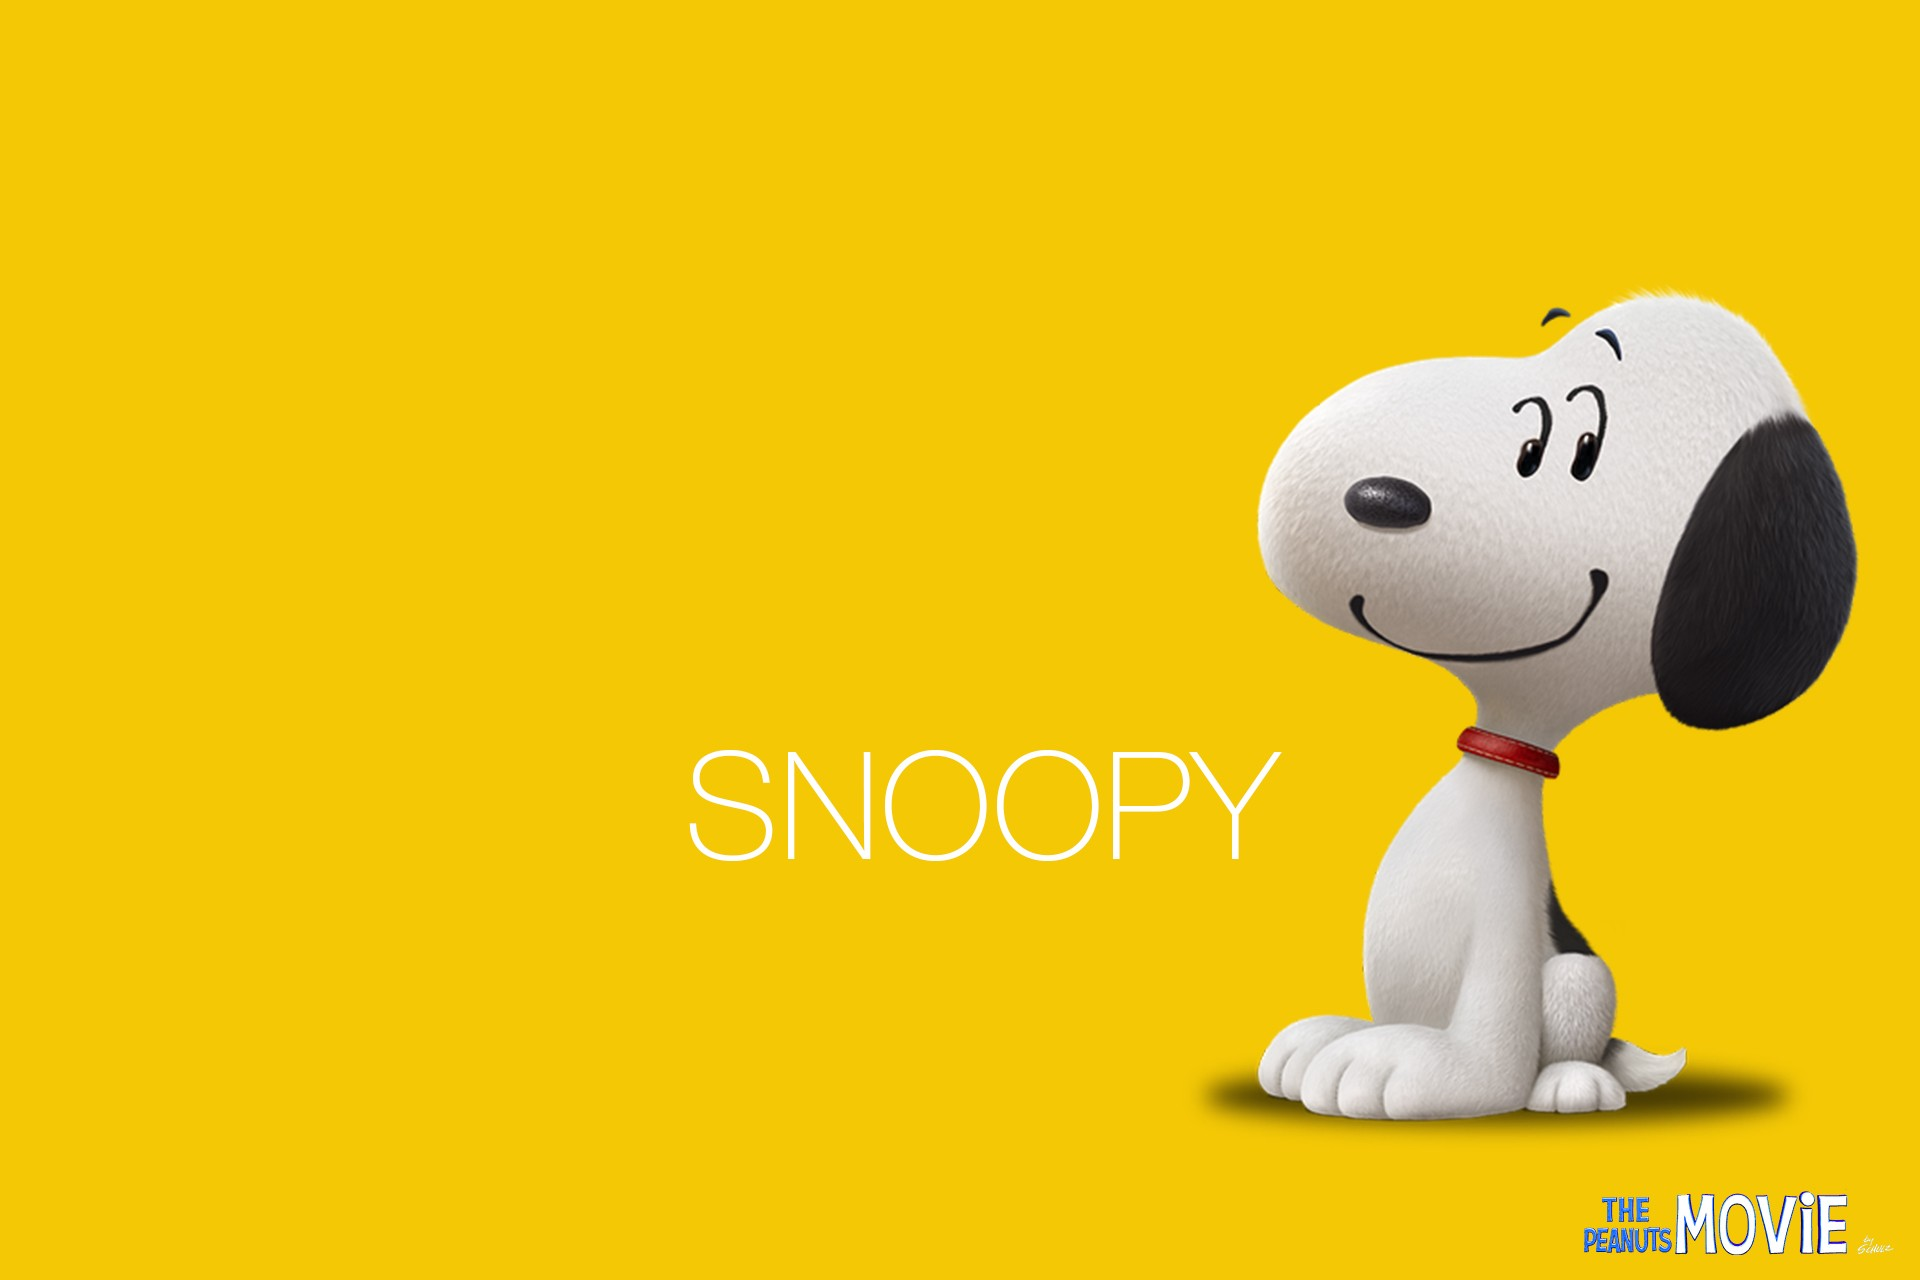 Snoopy wallpaper download free high resolution - Free snoopy images ...